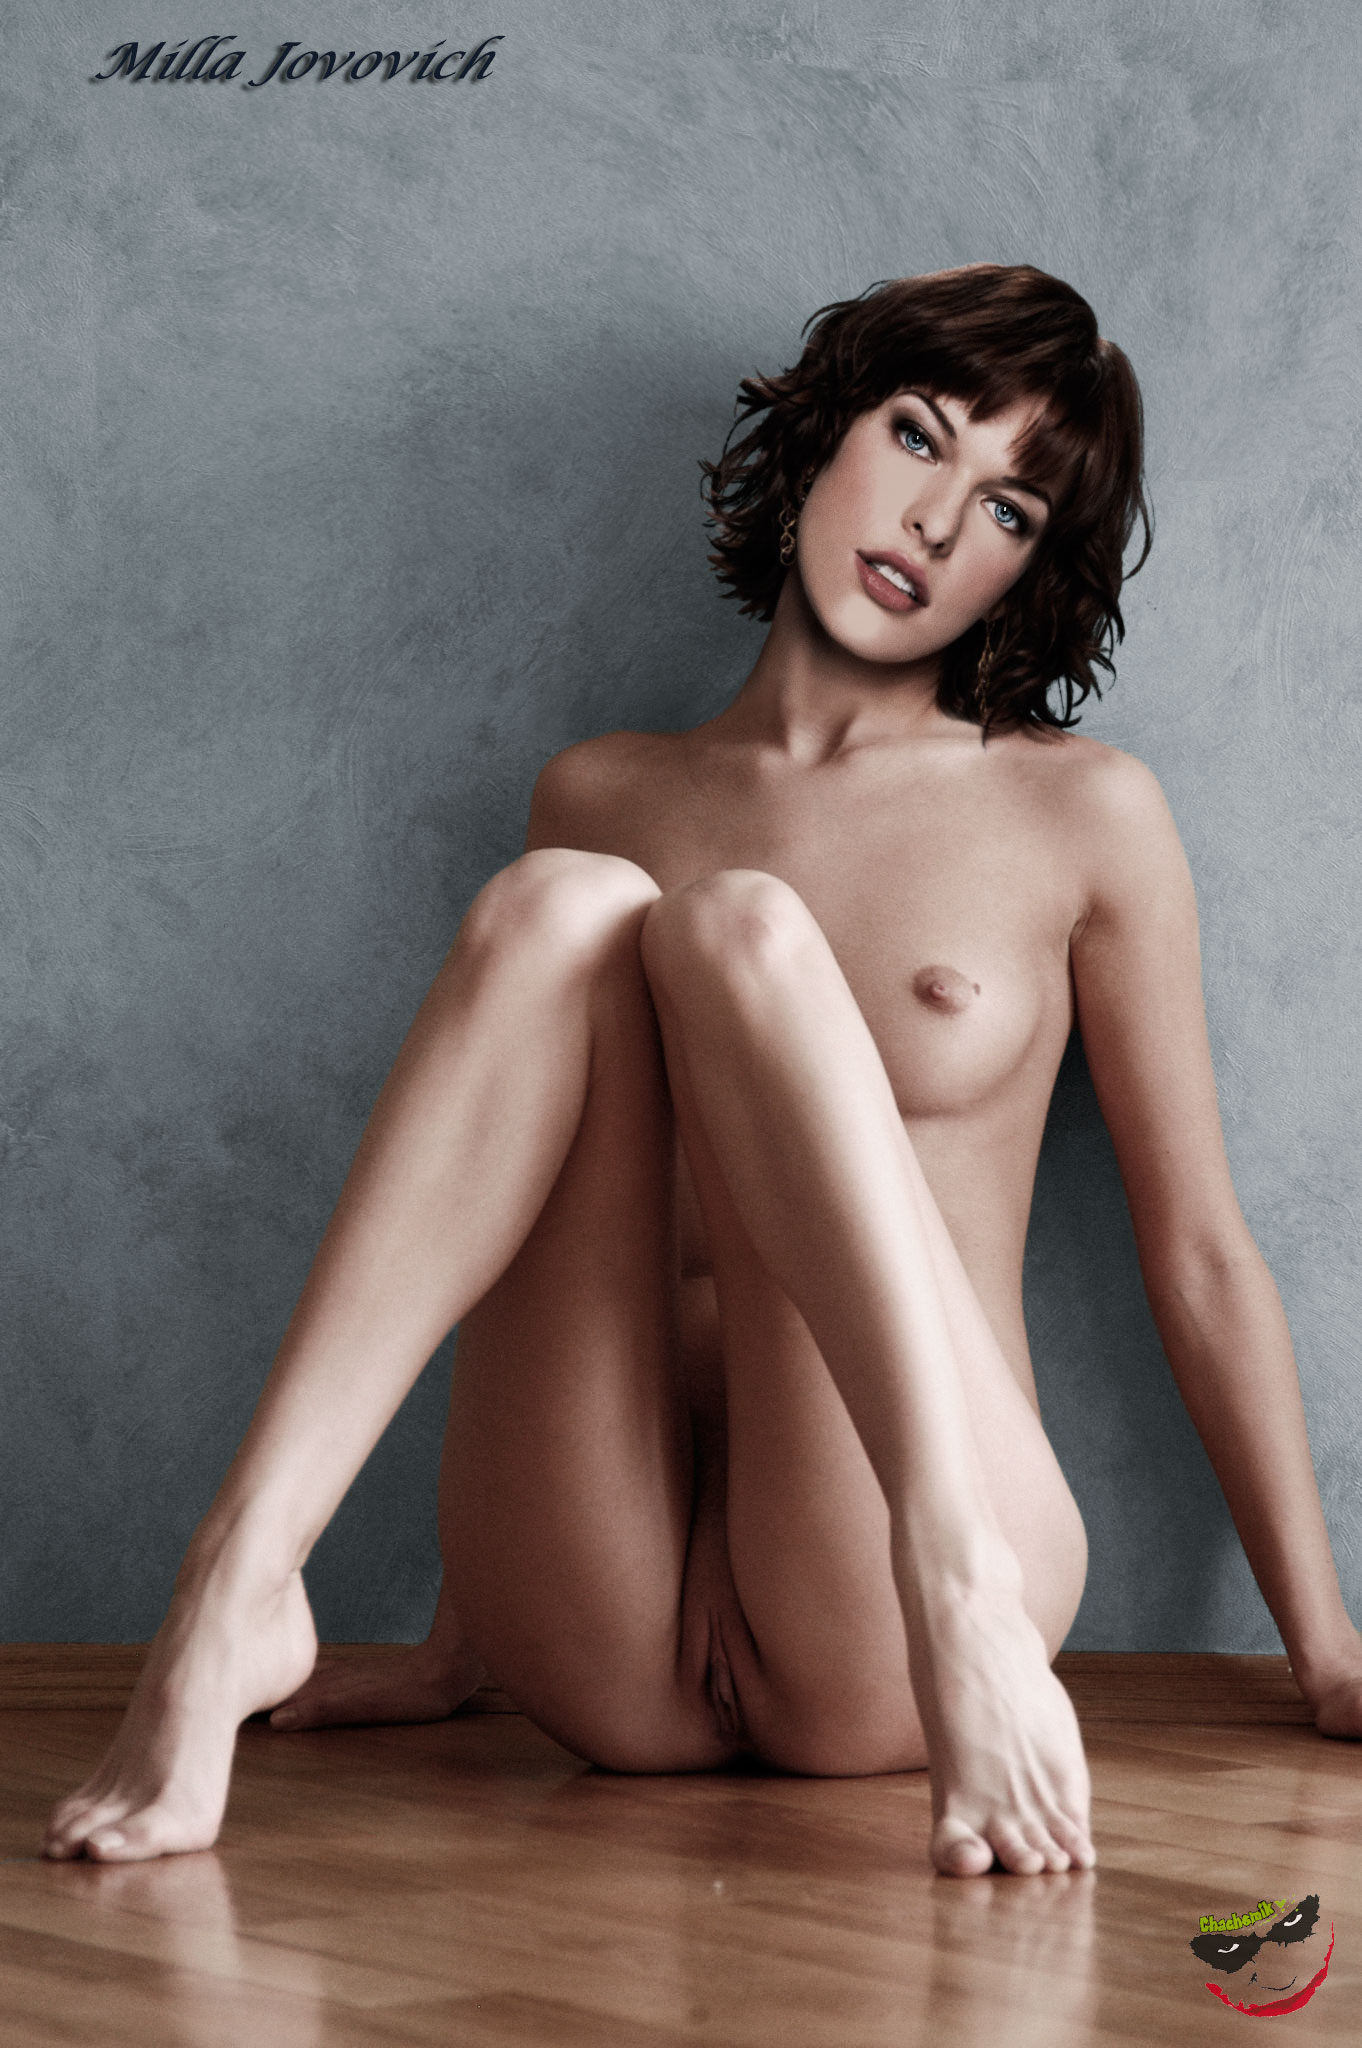 milla jovo fully naked